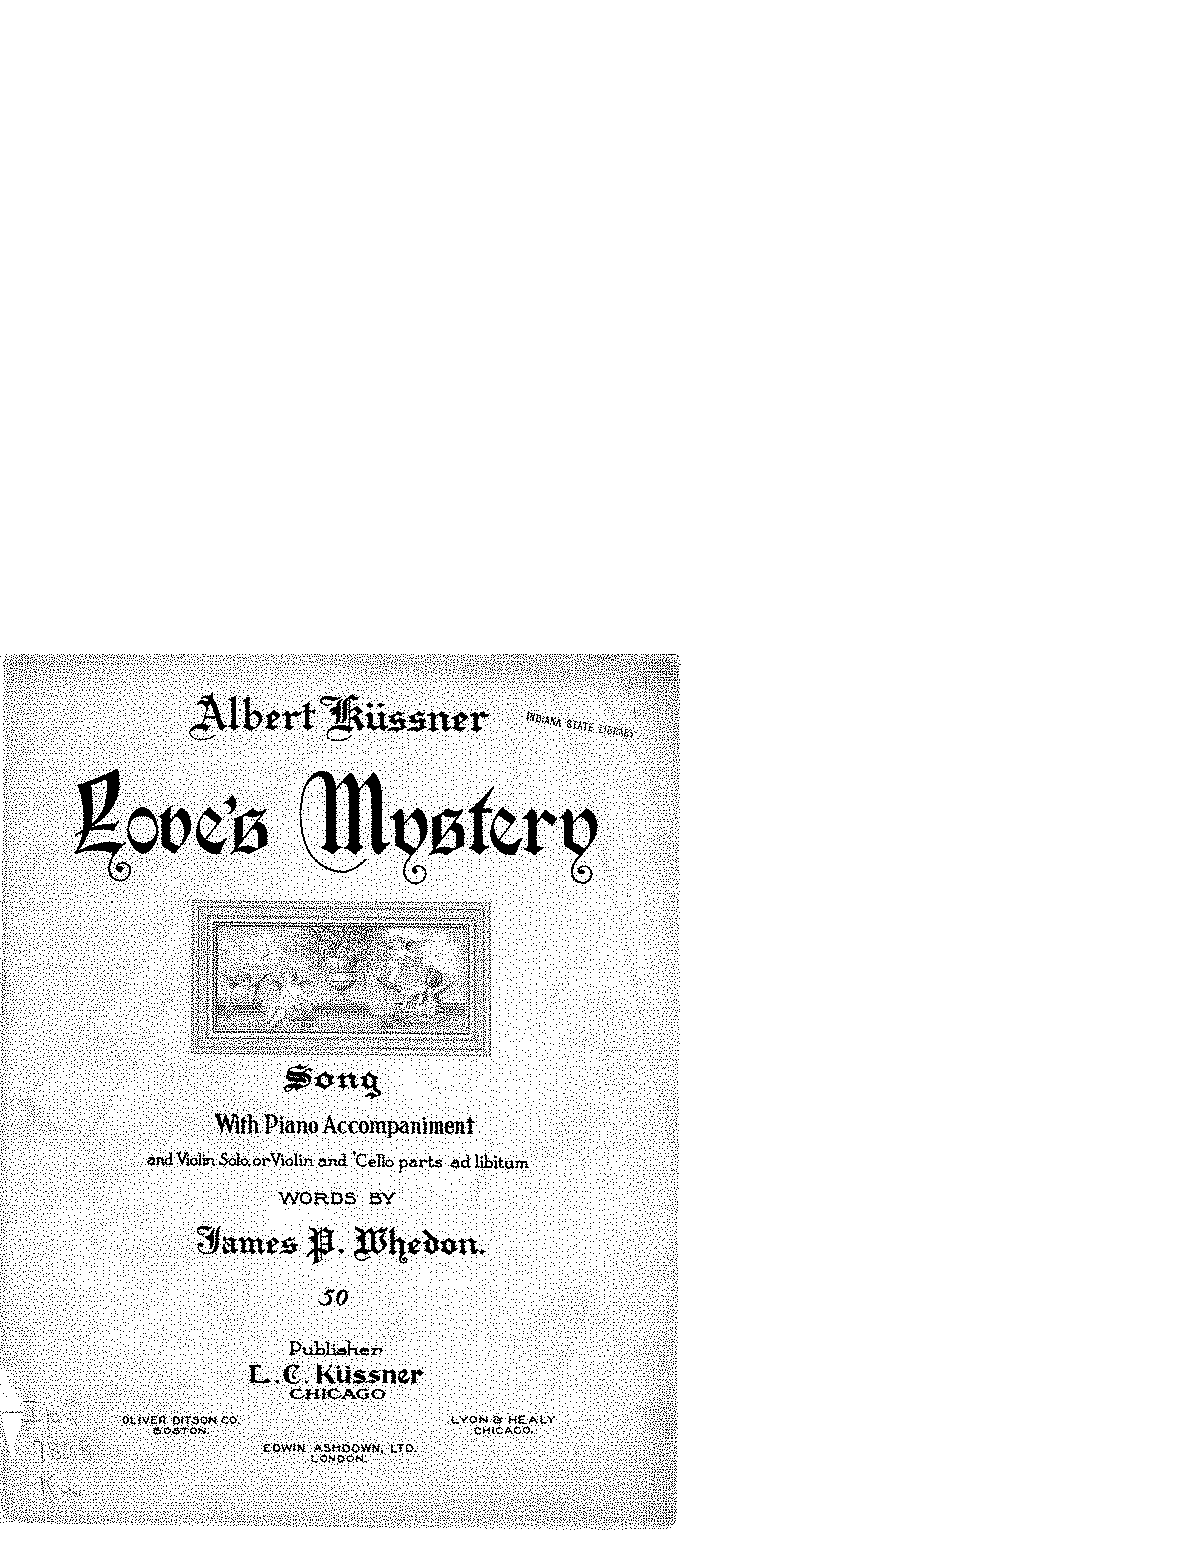 PMLP130268-Kussner - Love's mystery (Liebeszauber) Voice and Piano Trio.pdf